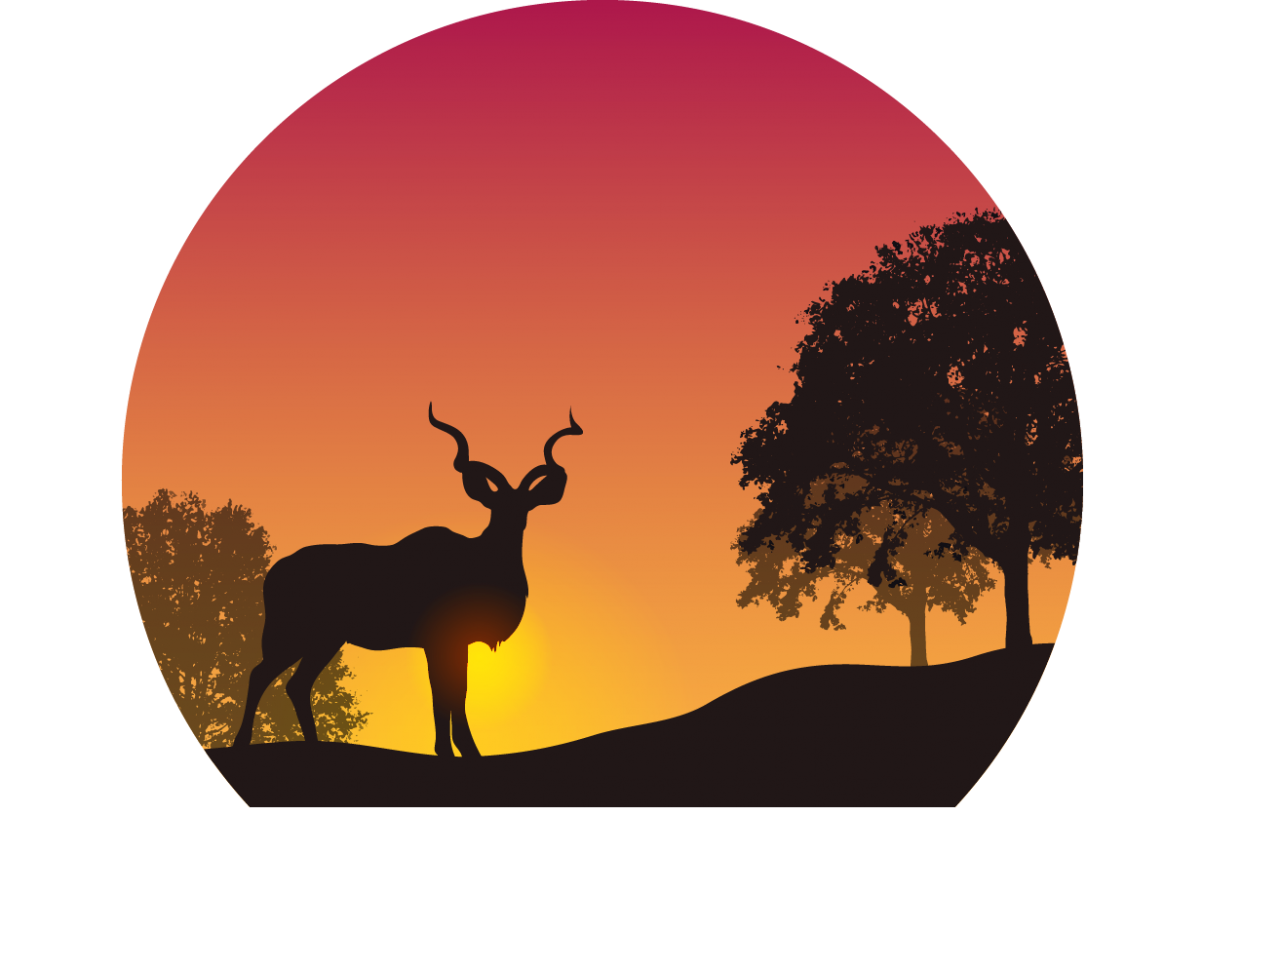 Sunset in the Wild PNG Image